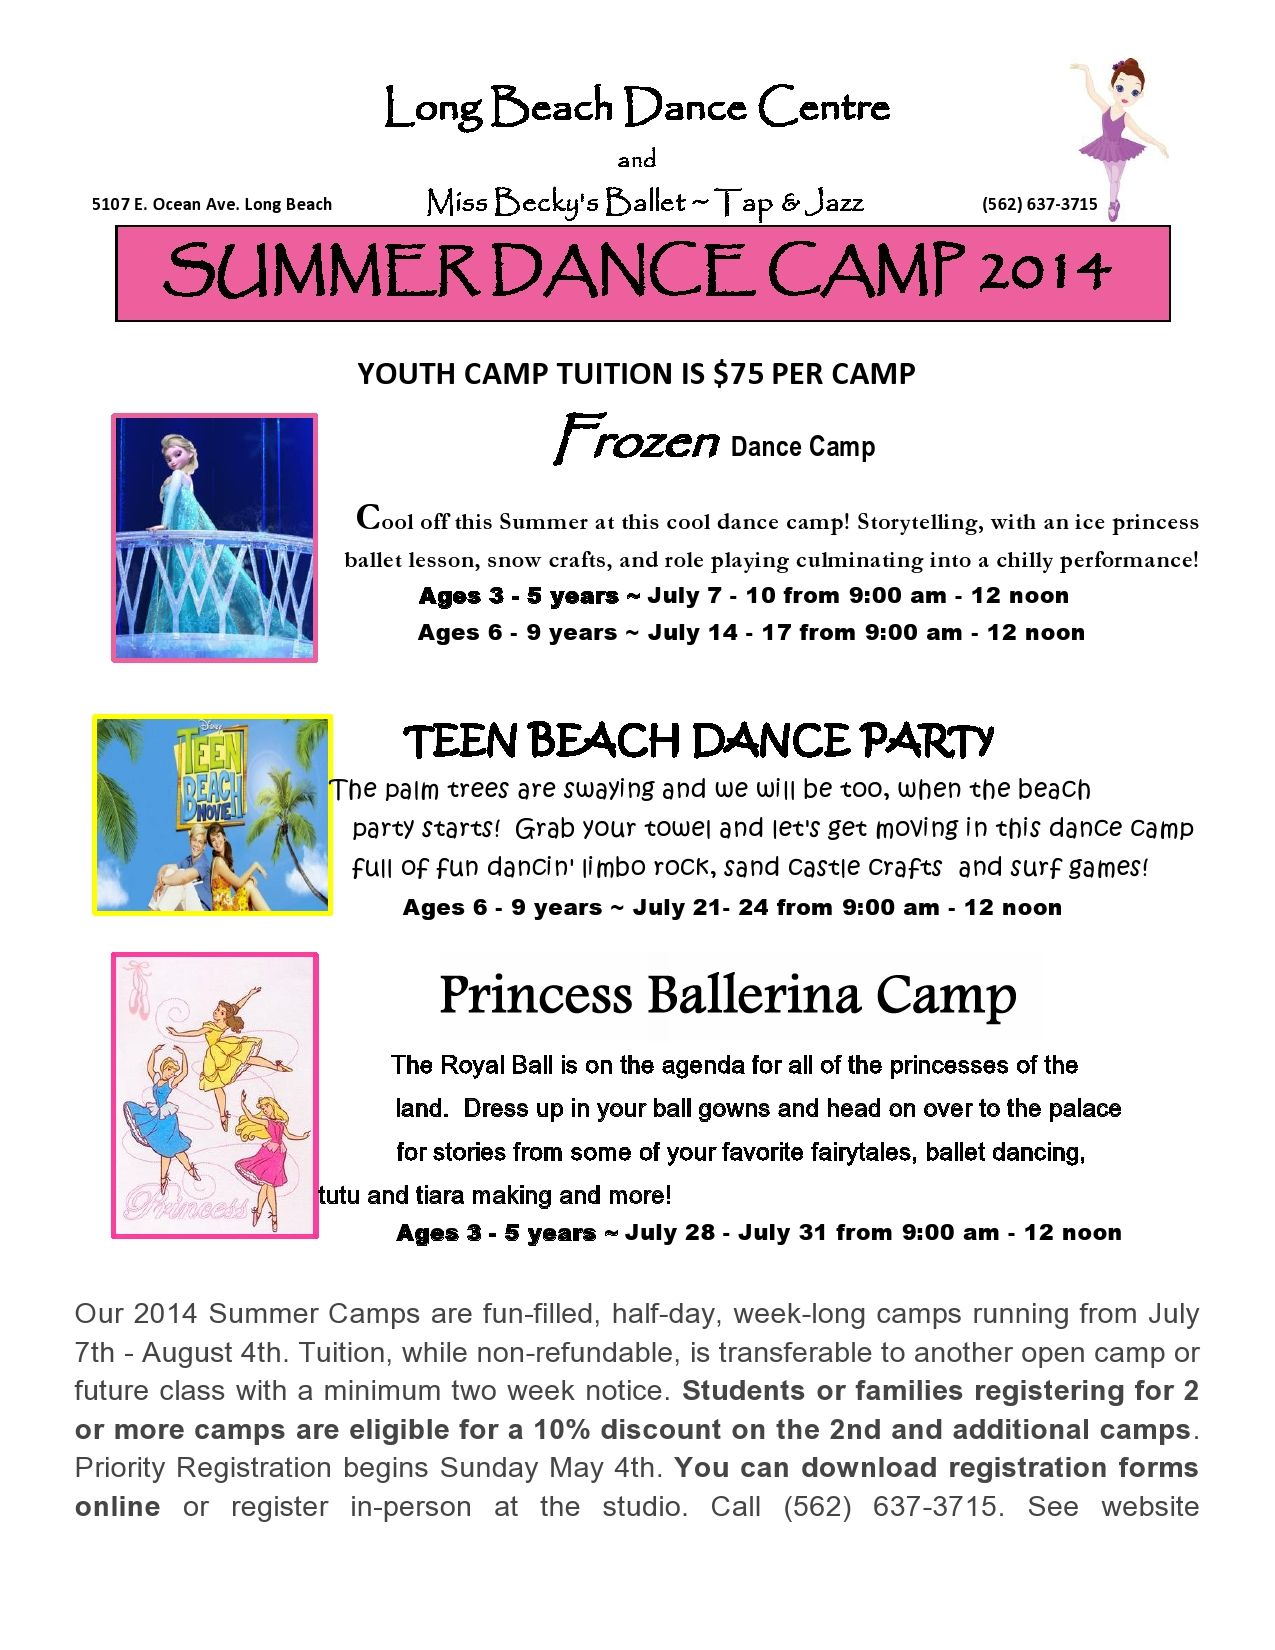 Our 2014 Summer Camps Are Fun Filled Half Day Week Long Camps Running From July 7th August 4th Tuition While Summer Dance Camps Dance Camp Ballet Lessons